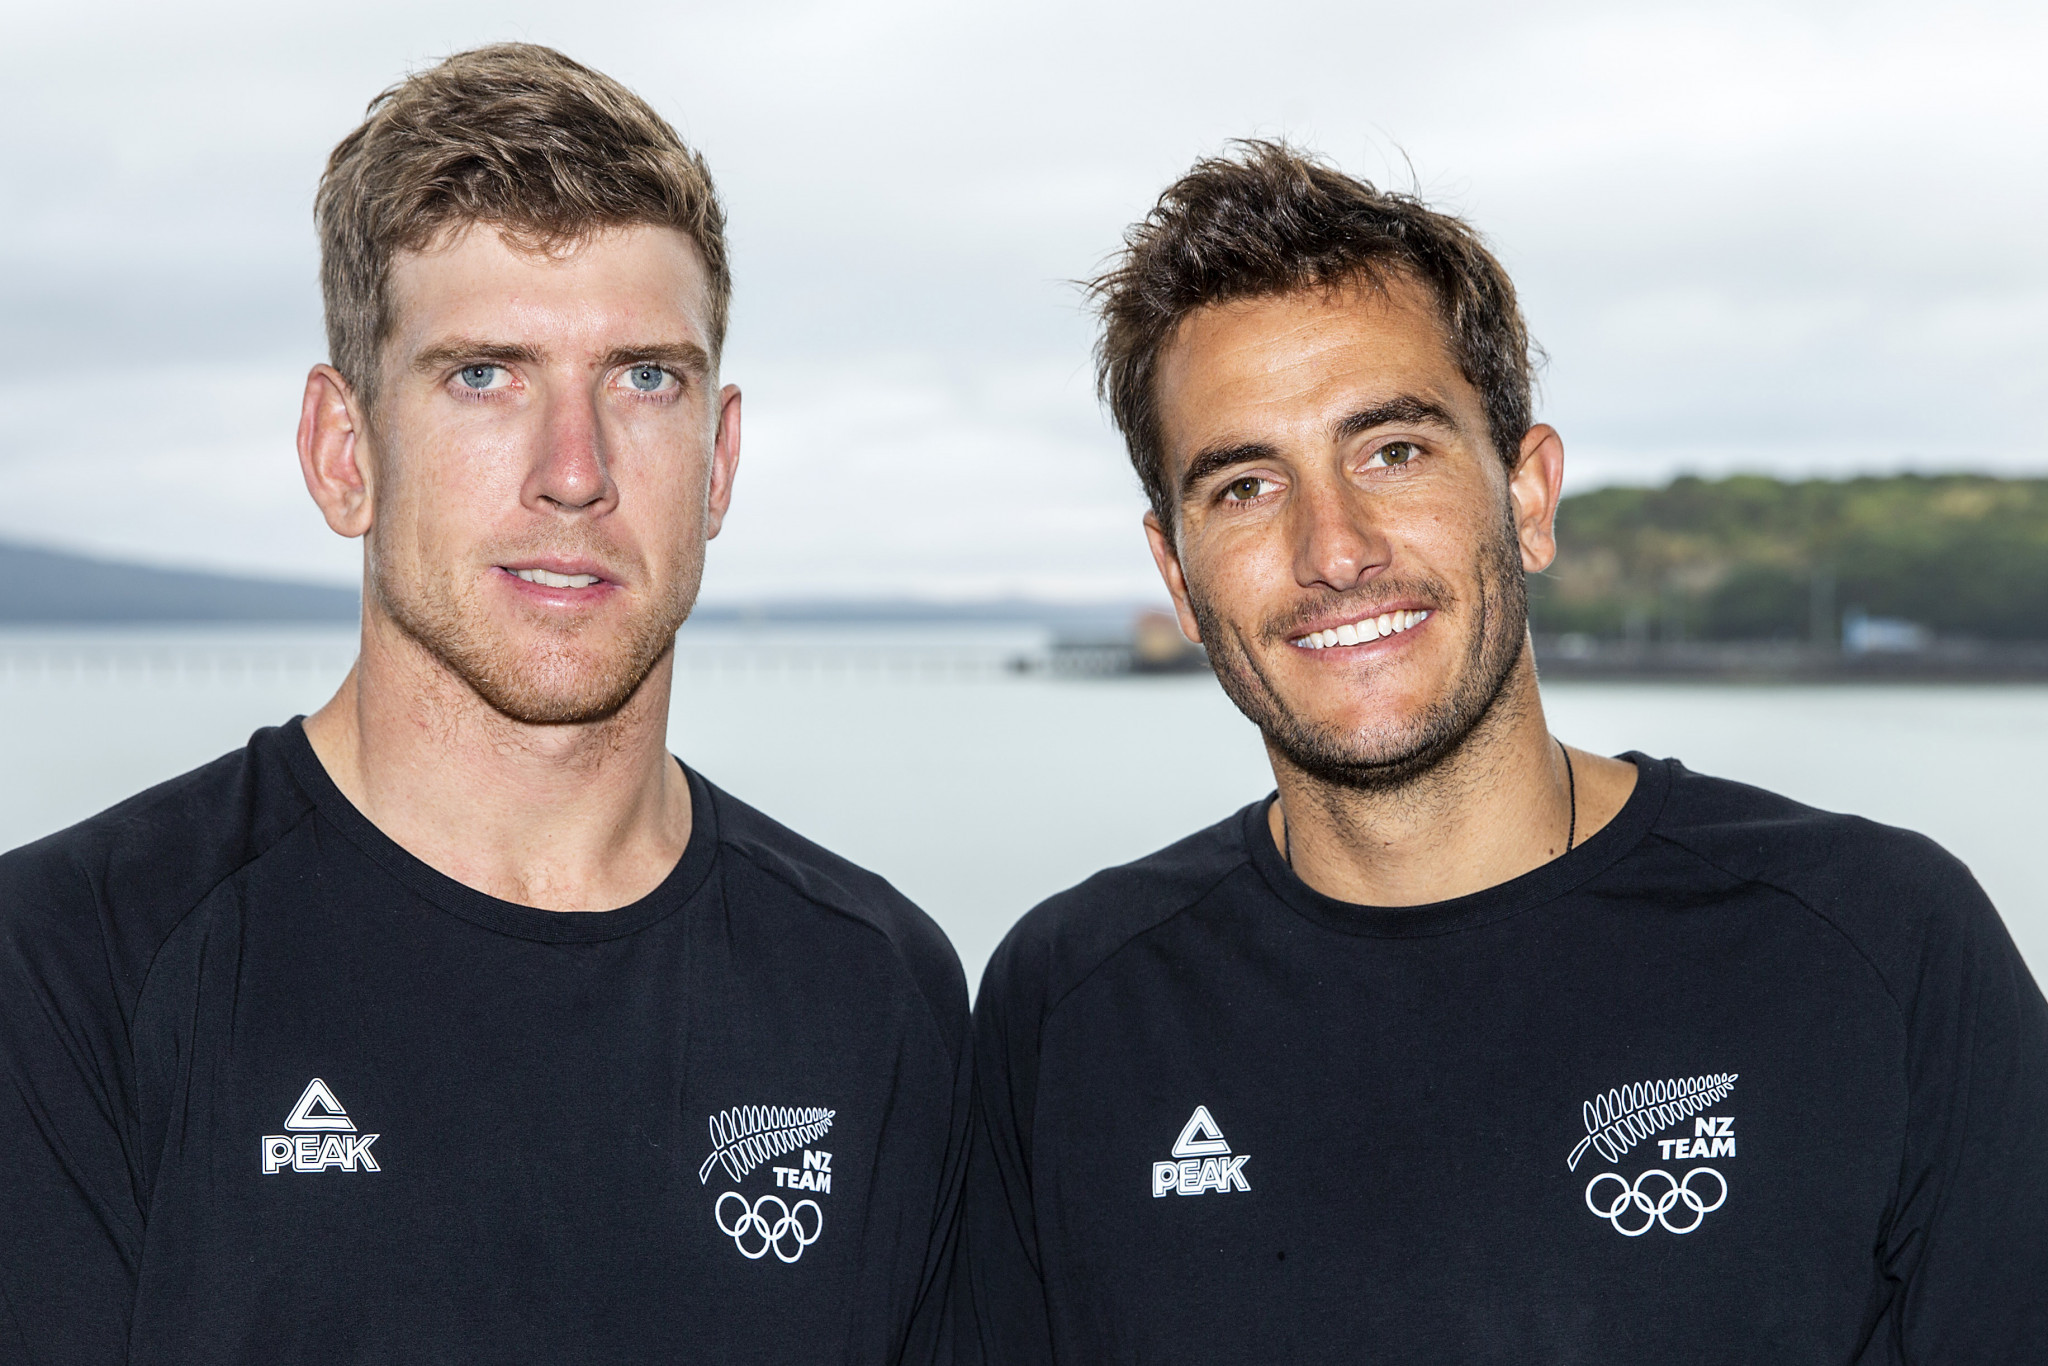 Seven sailors become New Zealand's first confirmed athletes for Tokyo 2020